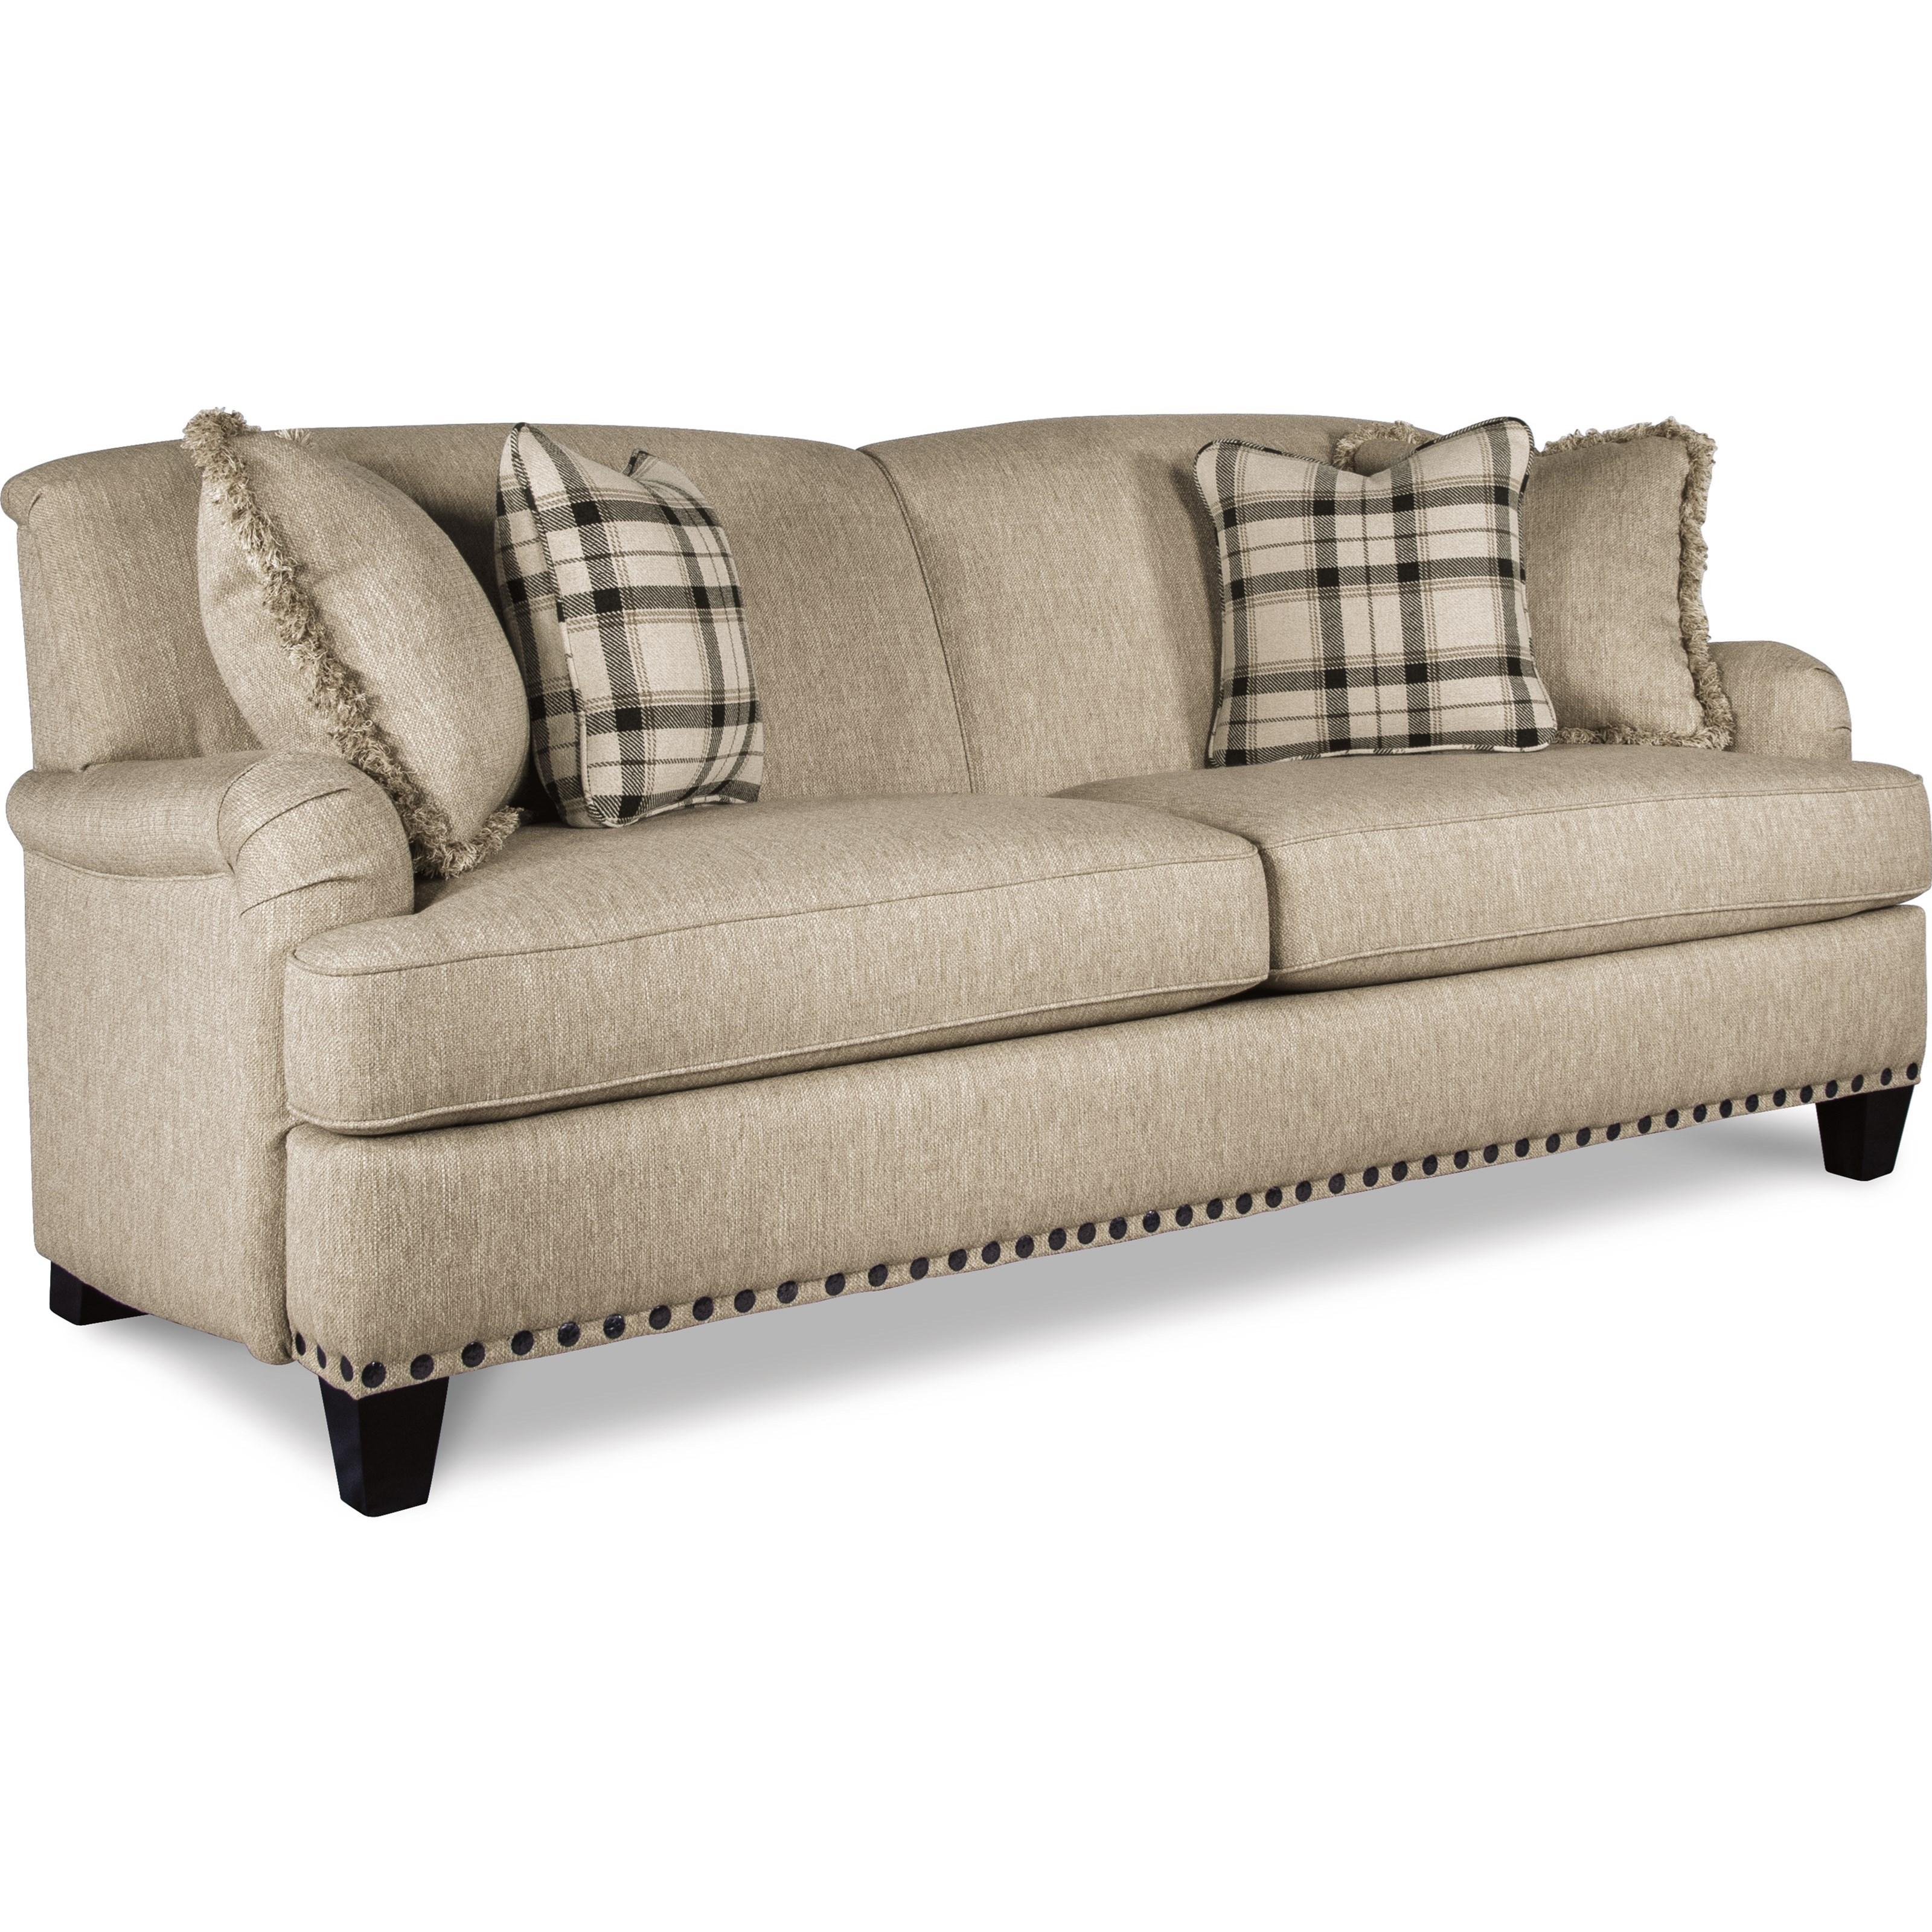 La z boy york traditional sofa with premier comfortcore cushions rotmans sofas - Sofa york ...